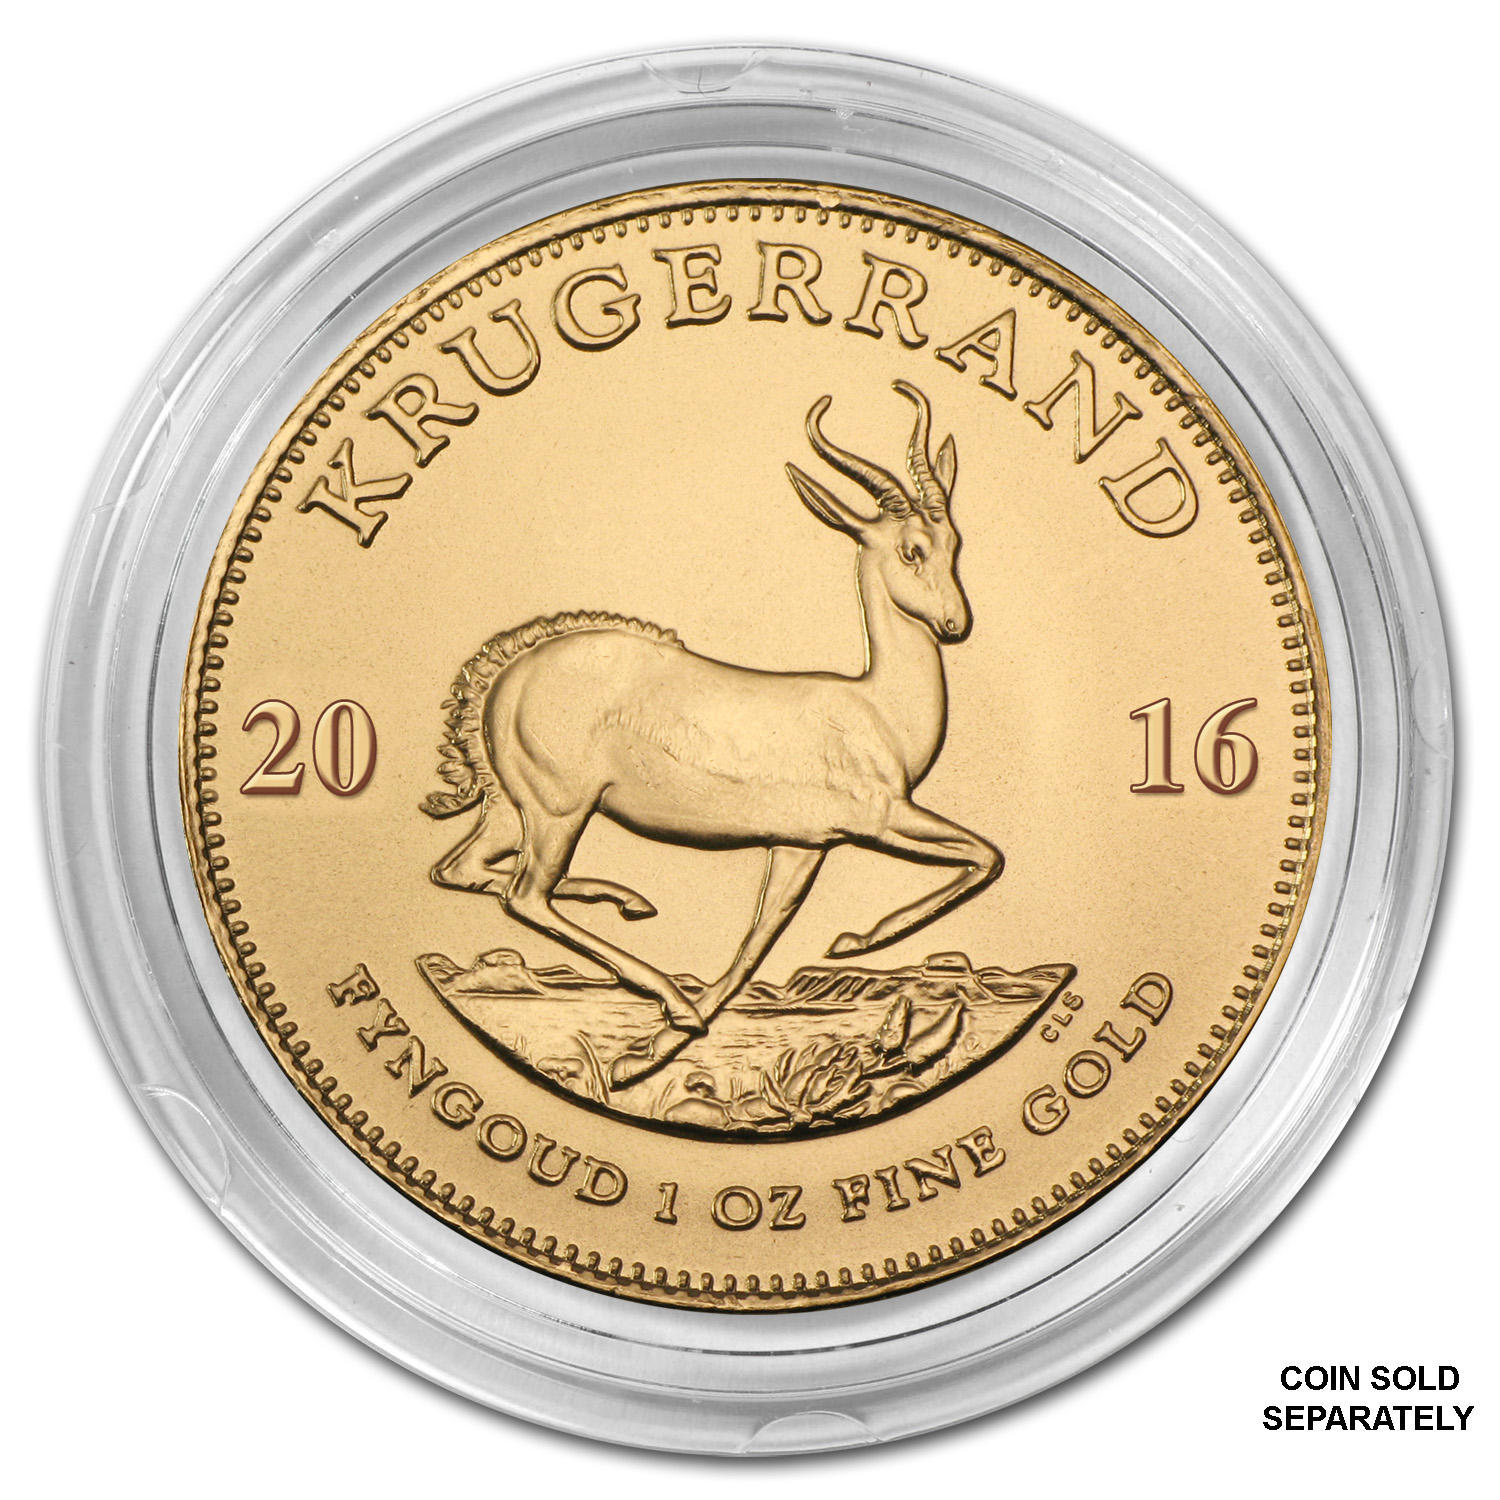 Gold South African Krugerrand Direct Fit Capsule — 1 oz